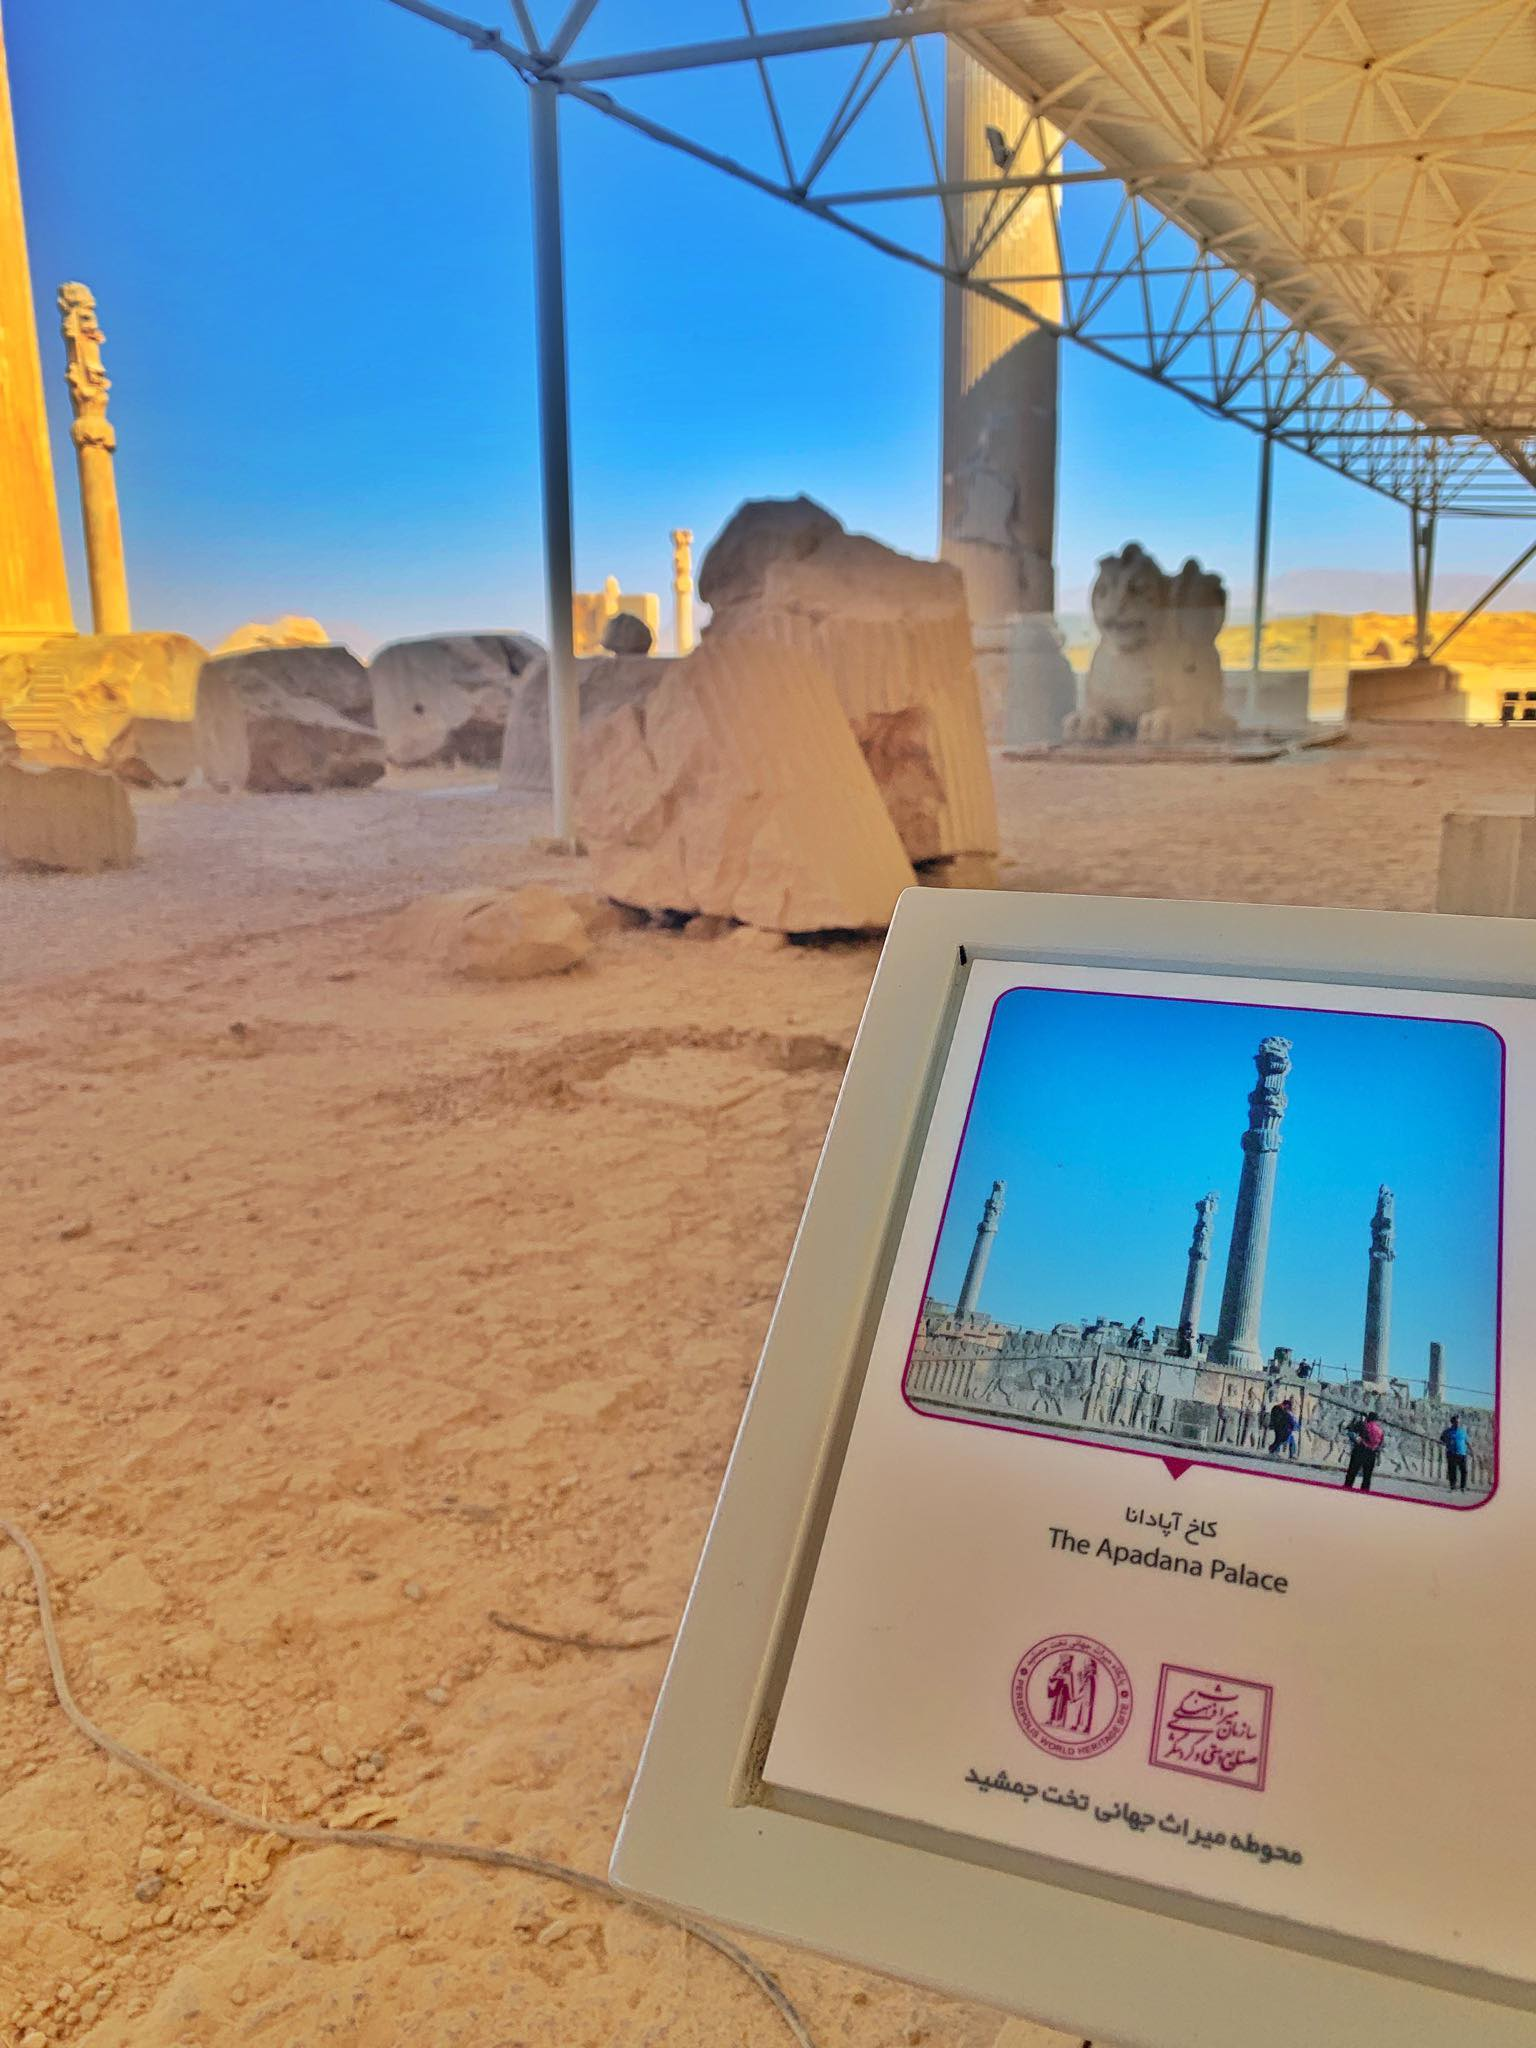 Kach Solo Travels in 2019 UNESCO heritages sites of Persepolis and Pasagardae21.jpg